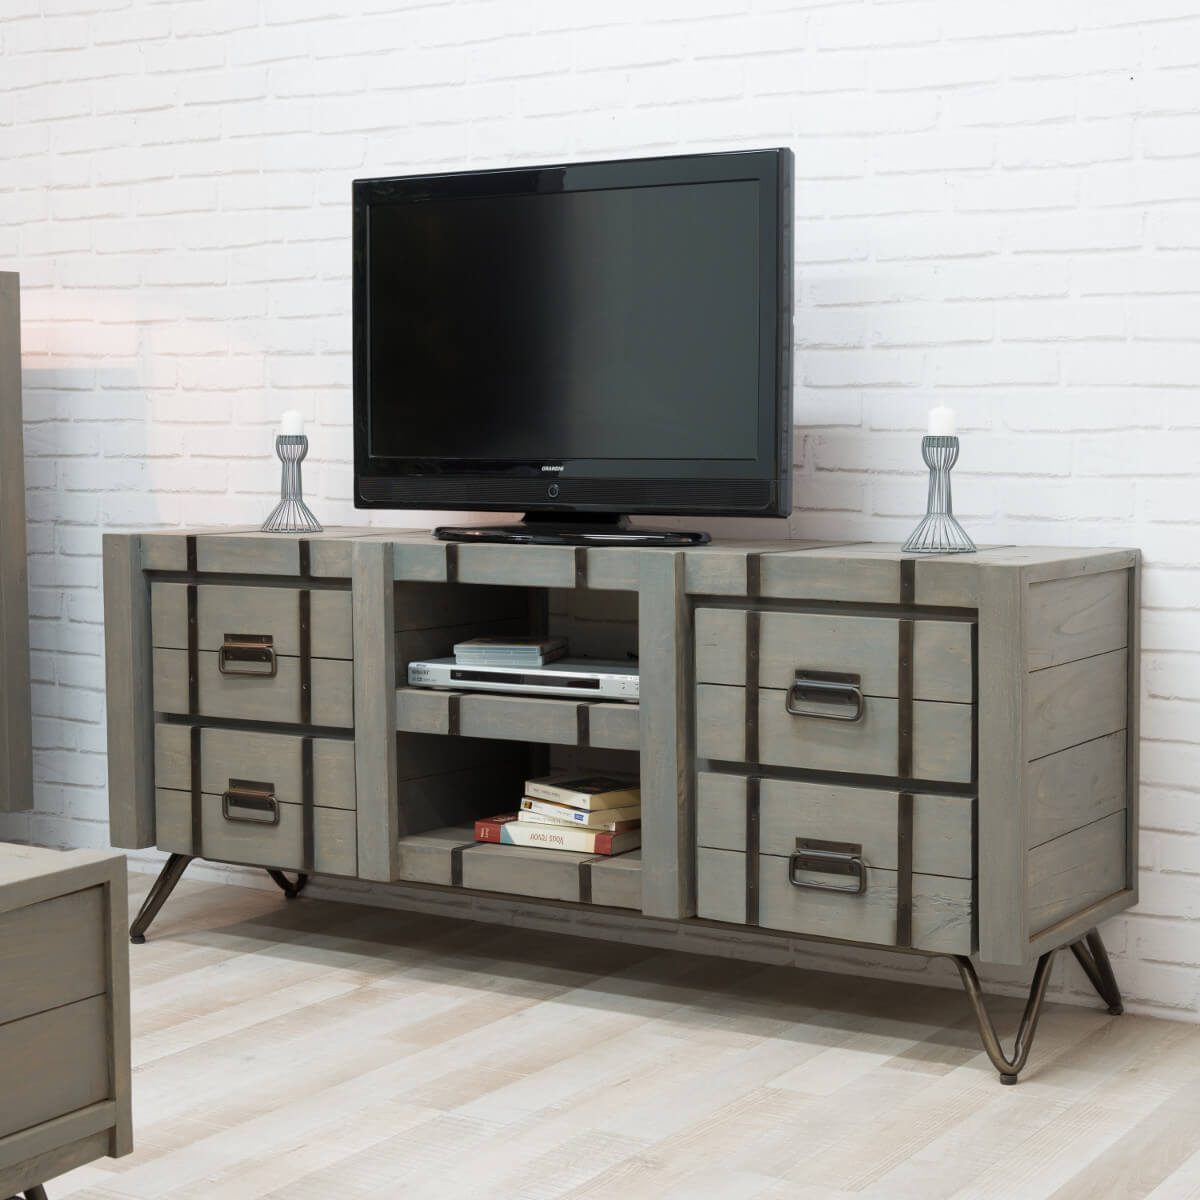 meuble tv loft meuble tv industriel bois rectangle gris loft 160 cm. Black Bedroom Furniture Sets. Home Design Ideas